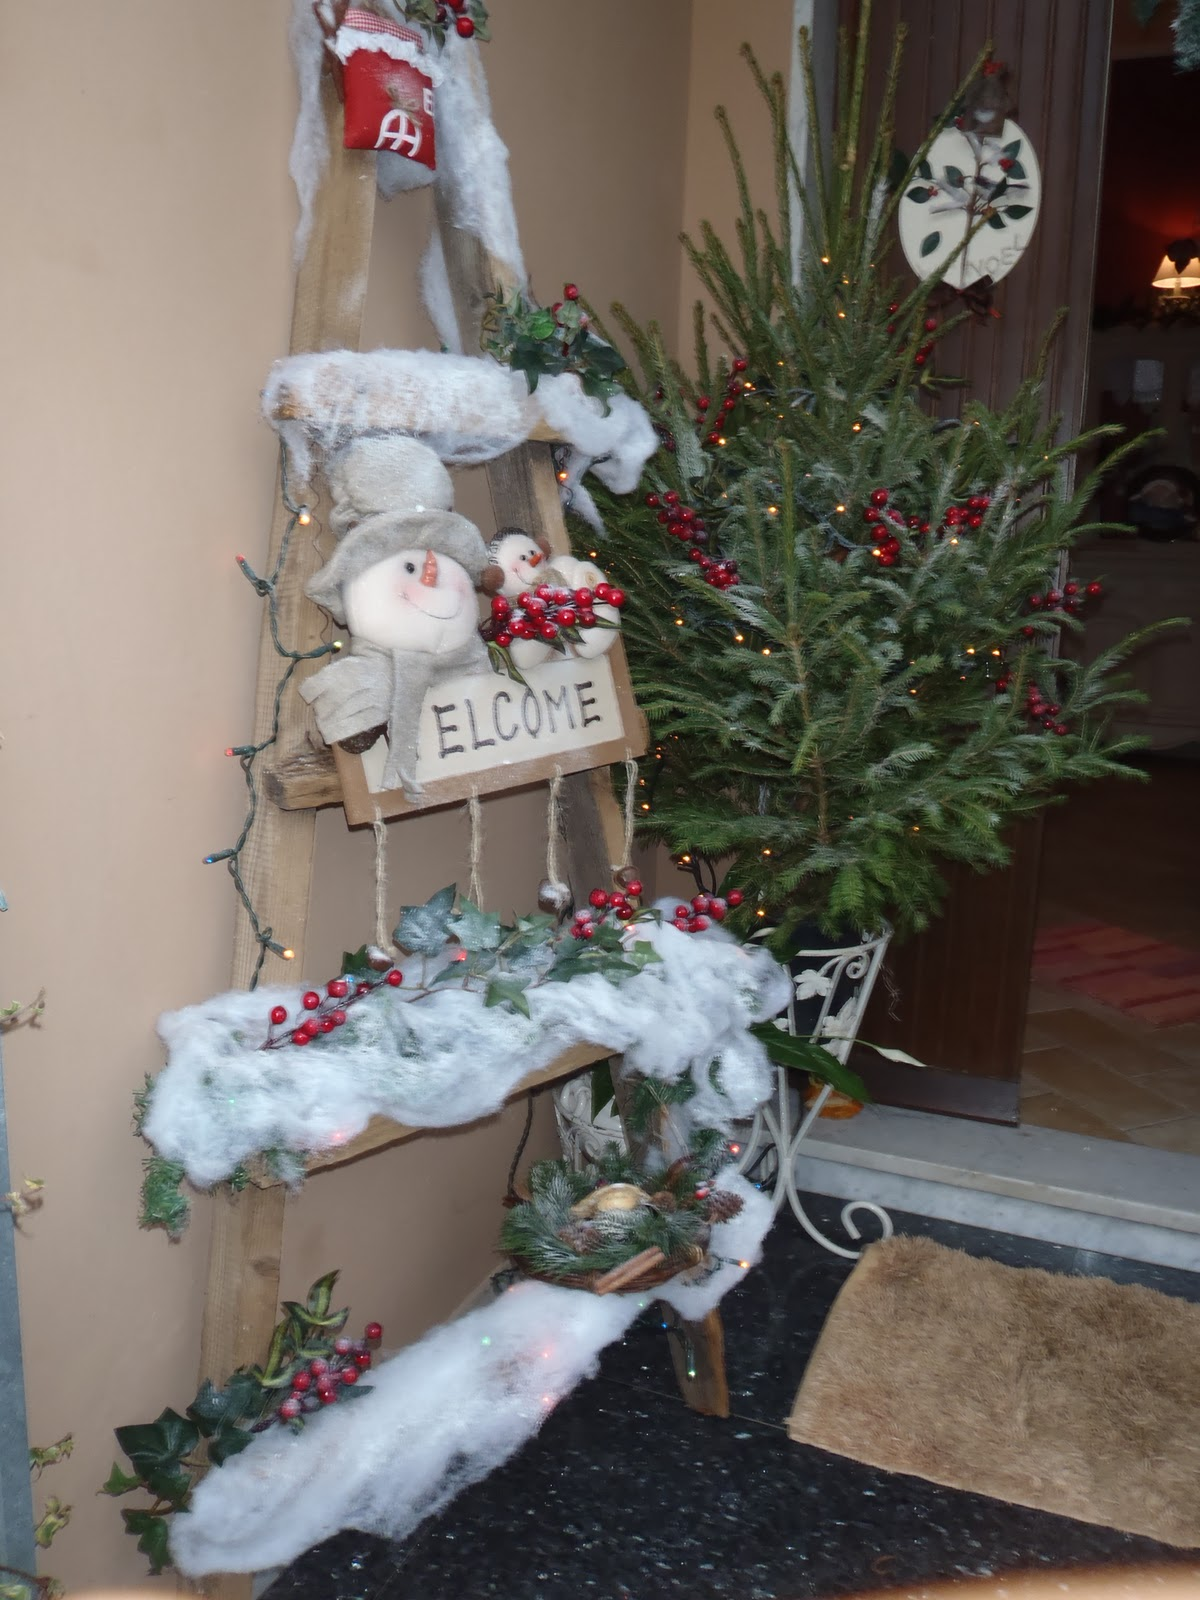 Il gufo e la luna shabby chic country style natale for Casa country chic